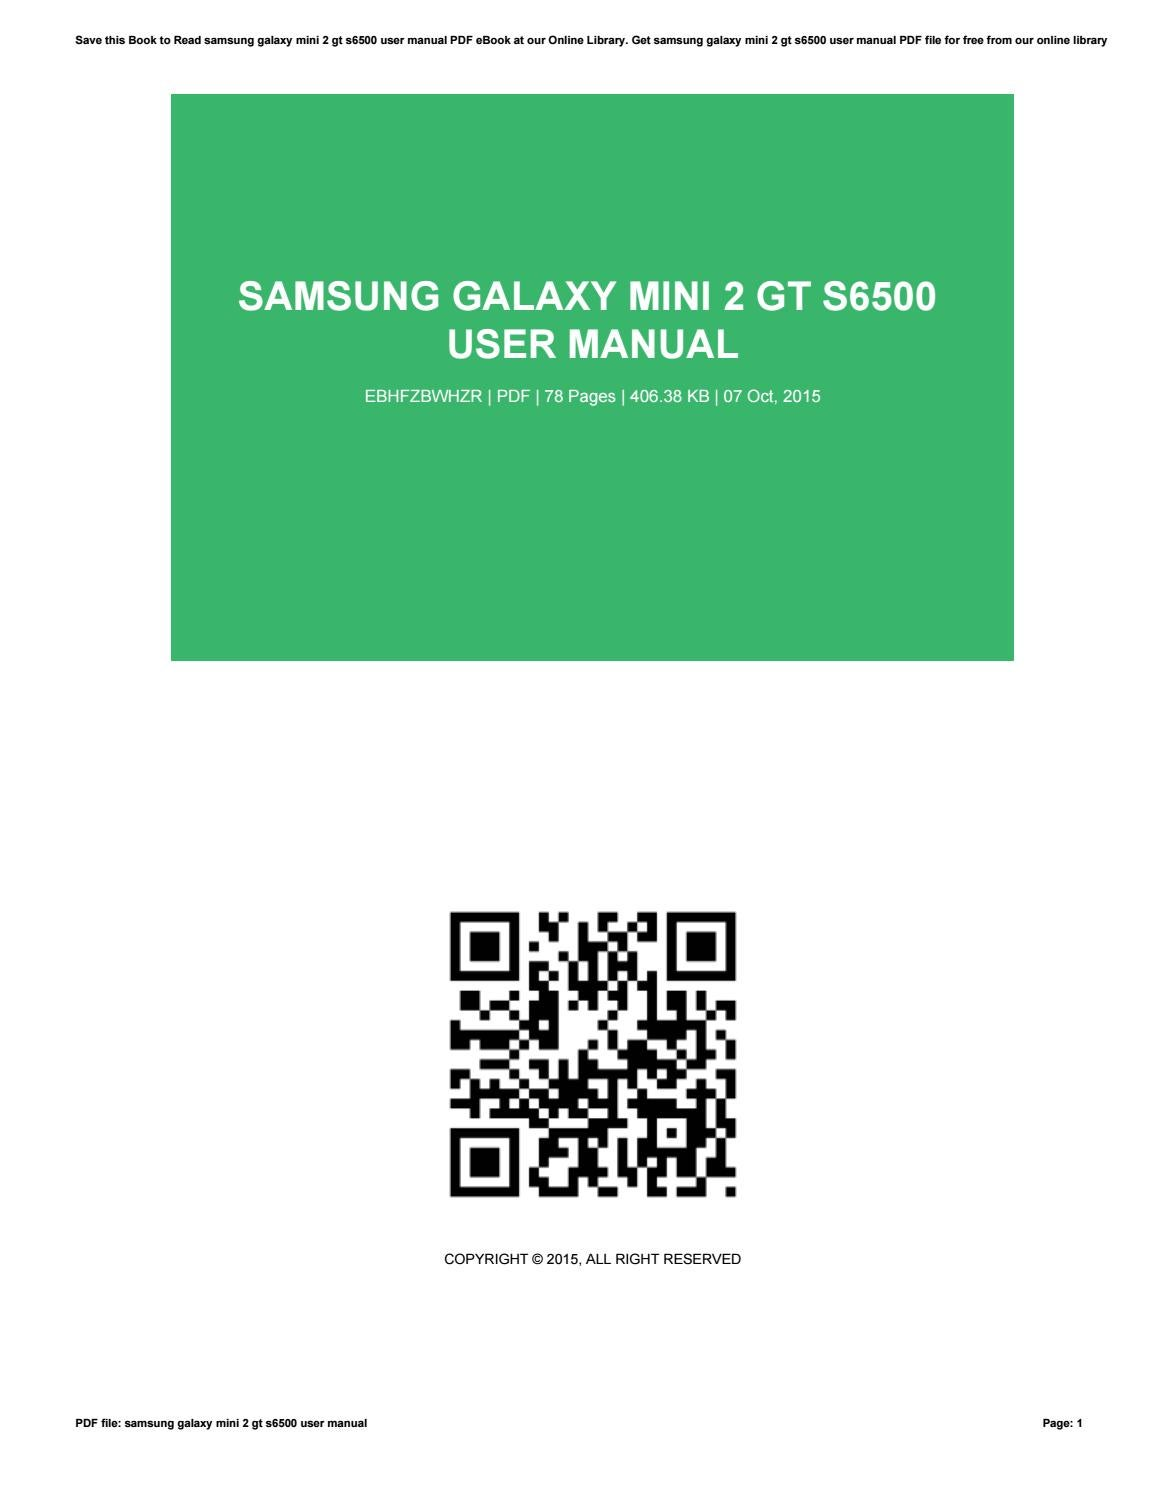 samsung owners manual pdf ebook